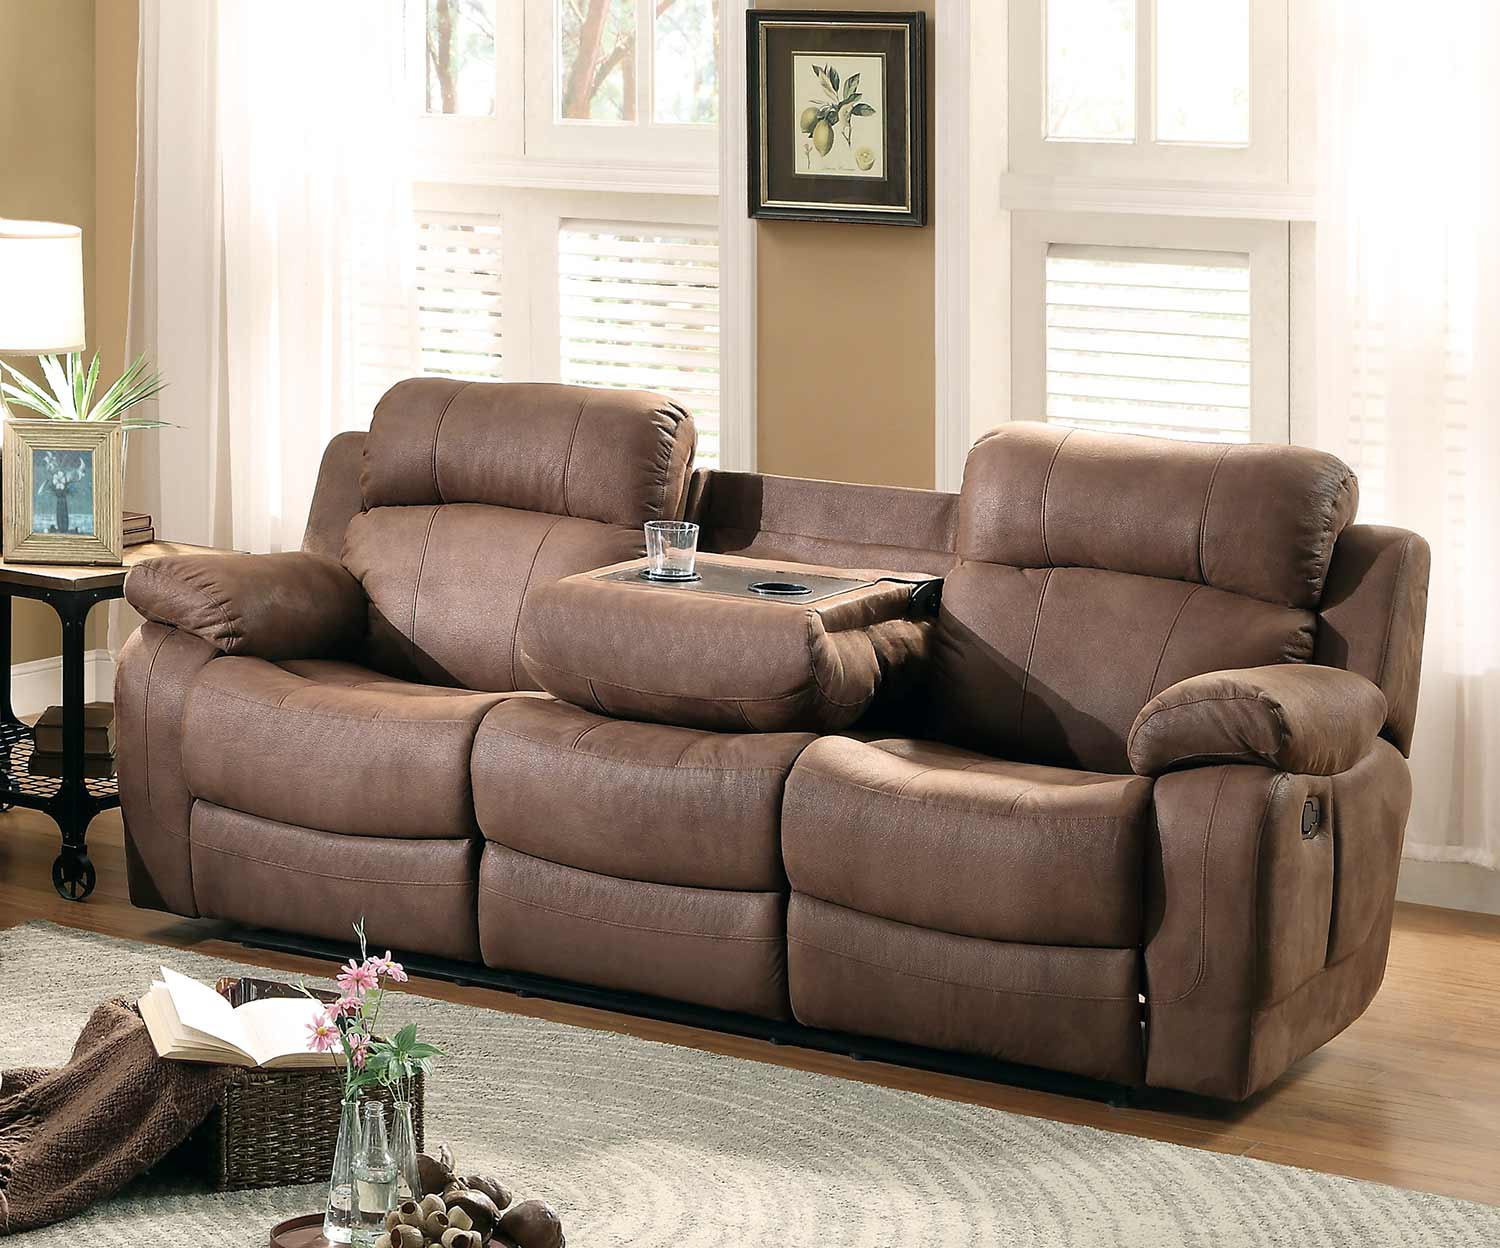 Genial ... Reclining Sofa W/Drop Down Cup Holders Click To Enlarge ...